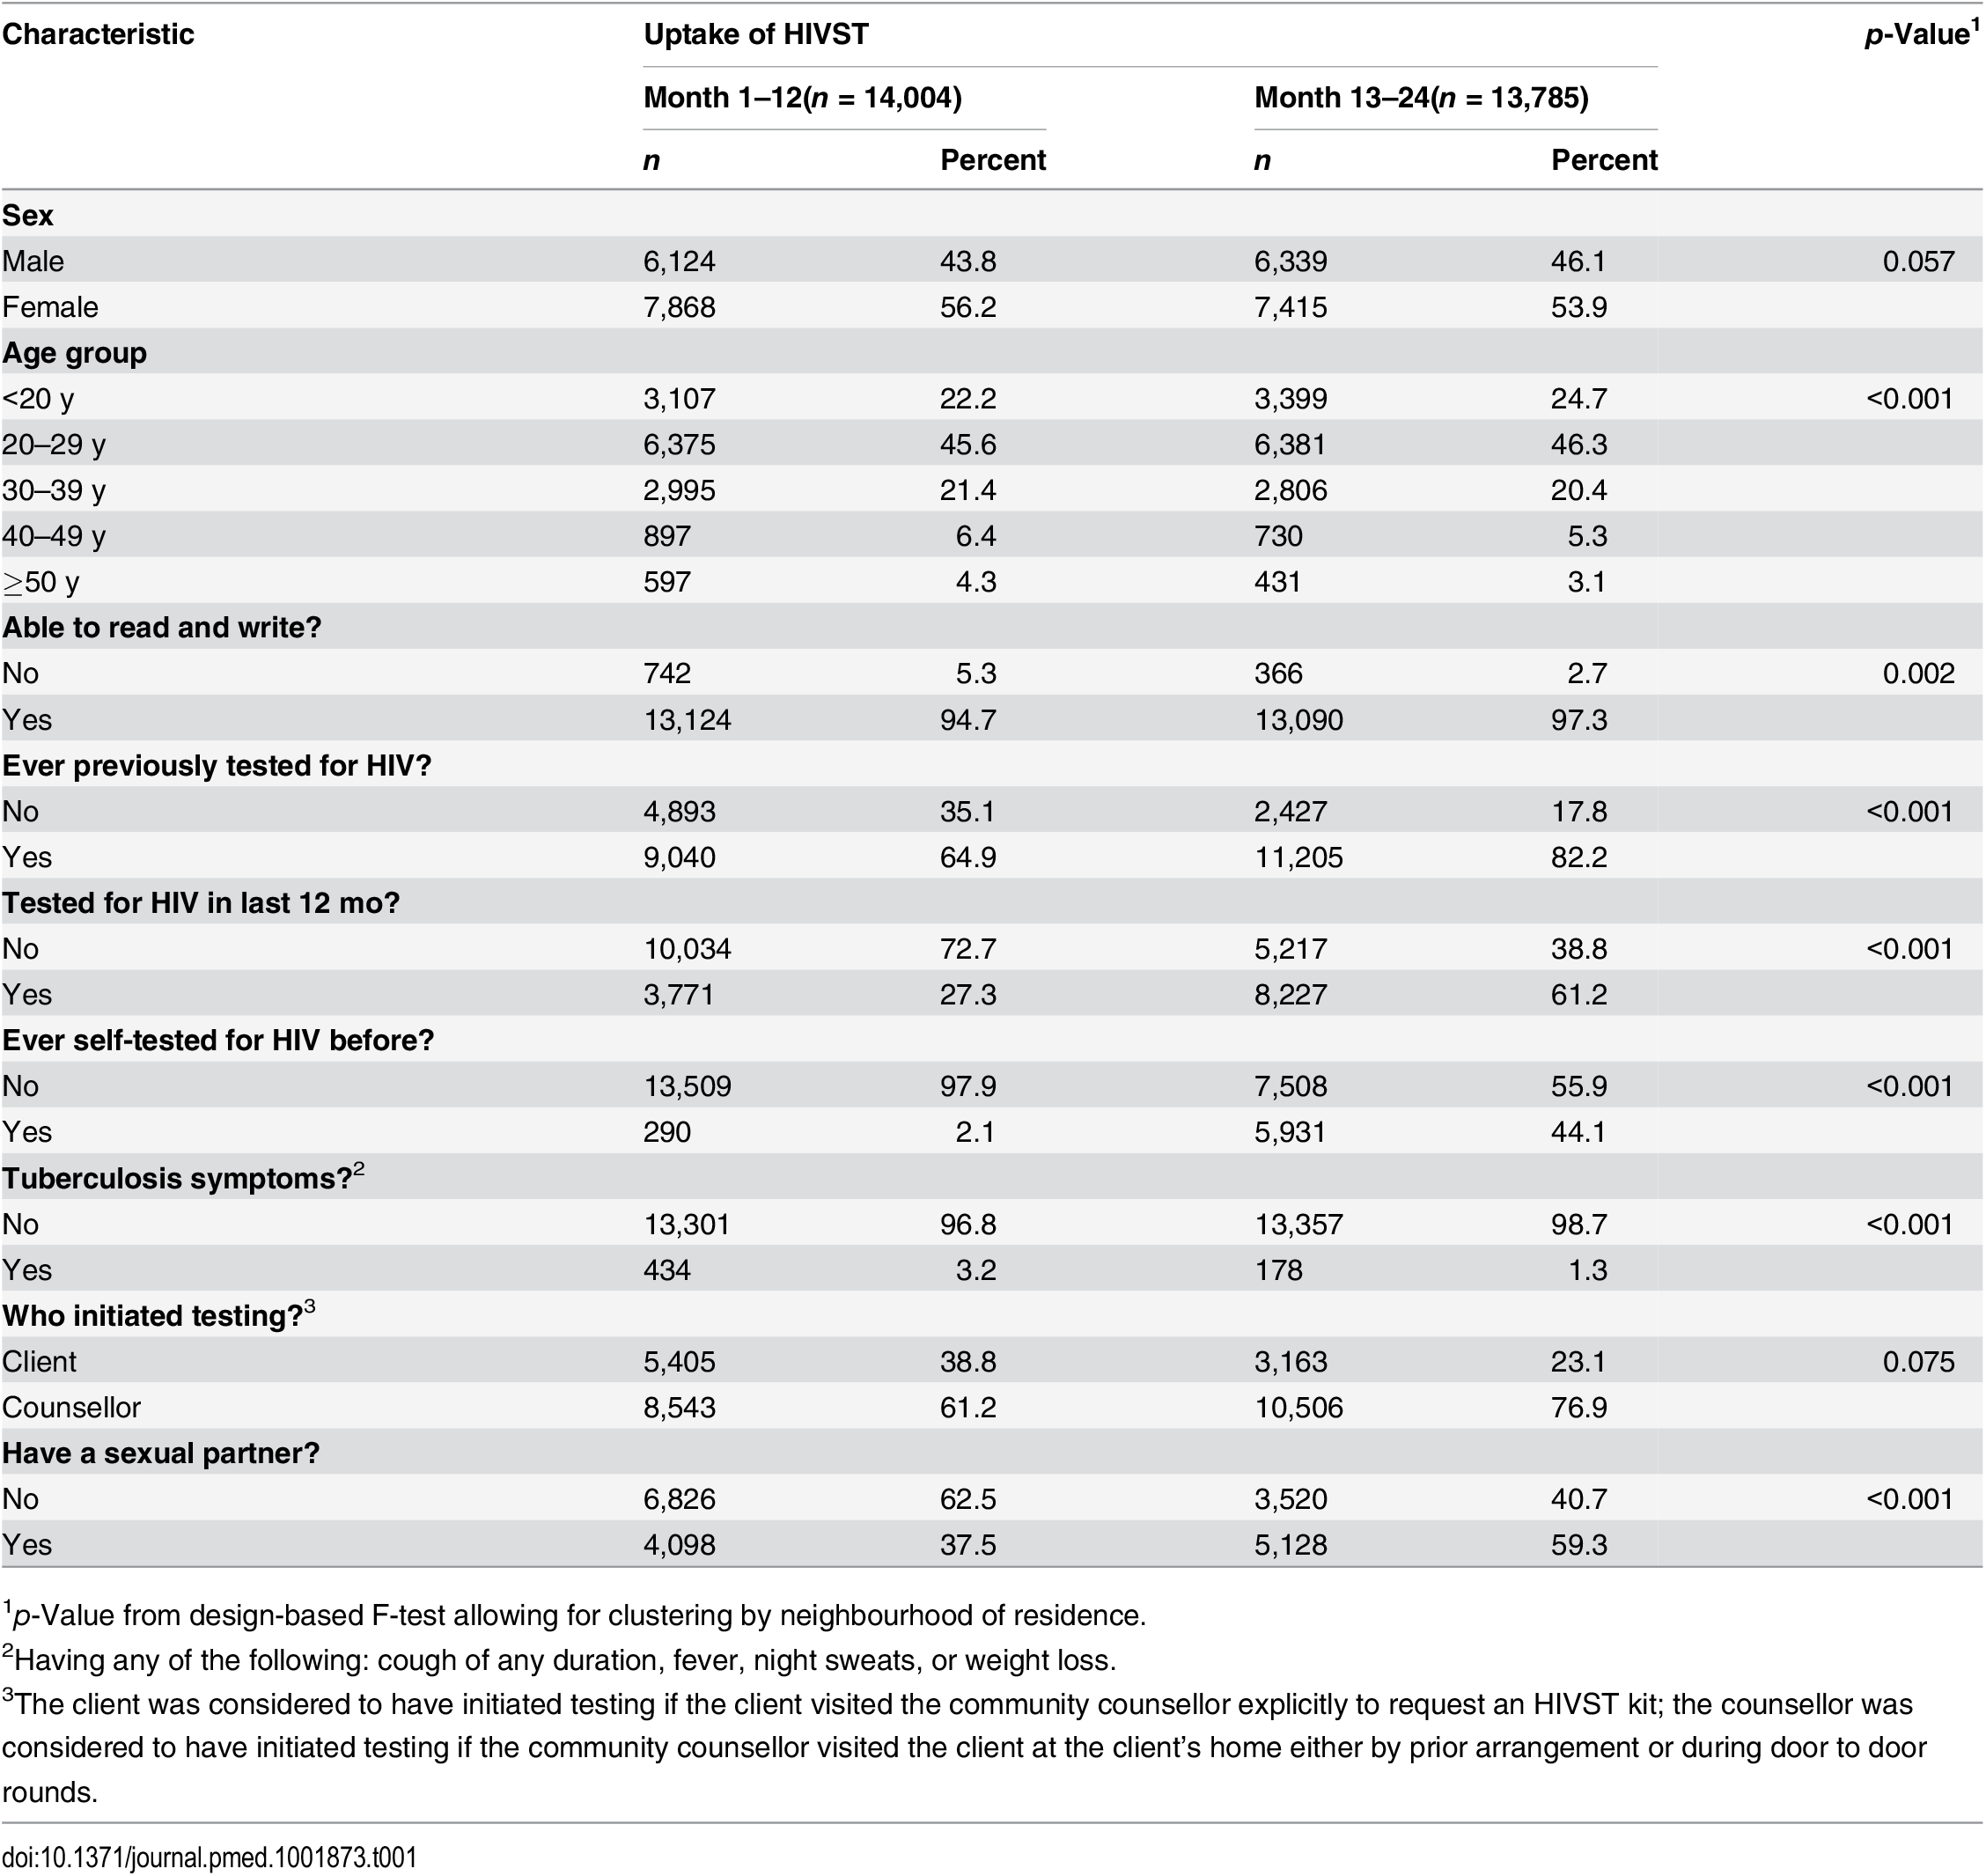 Characteristics of HIV self-testing participants in the first and second years of HIV self-testing availability.